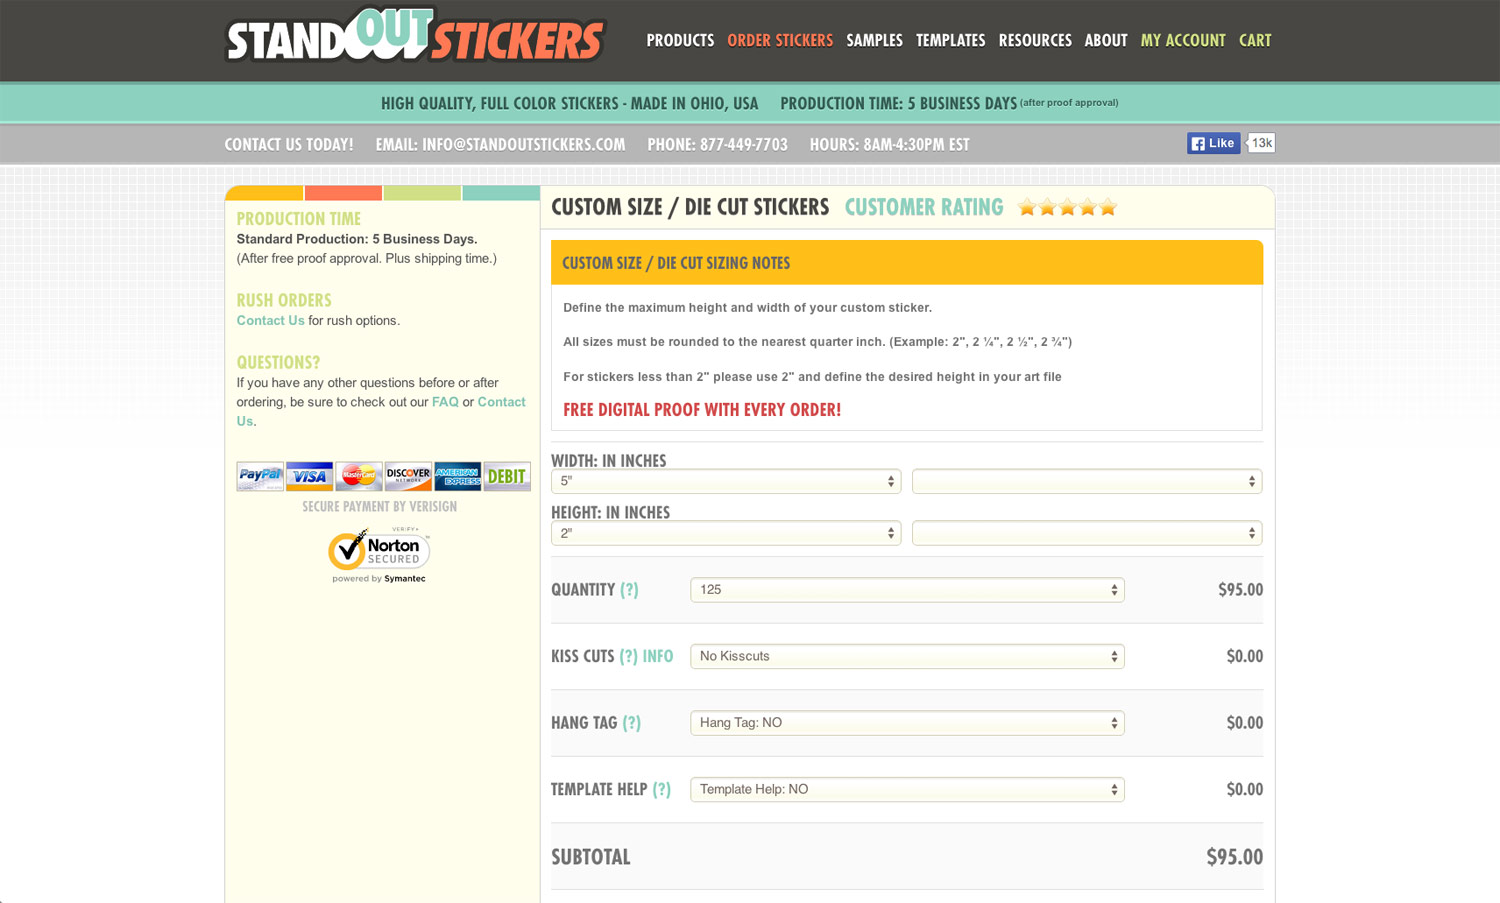 How To Order Stickers - Order custom stickers